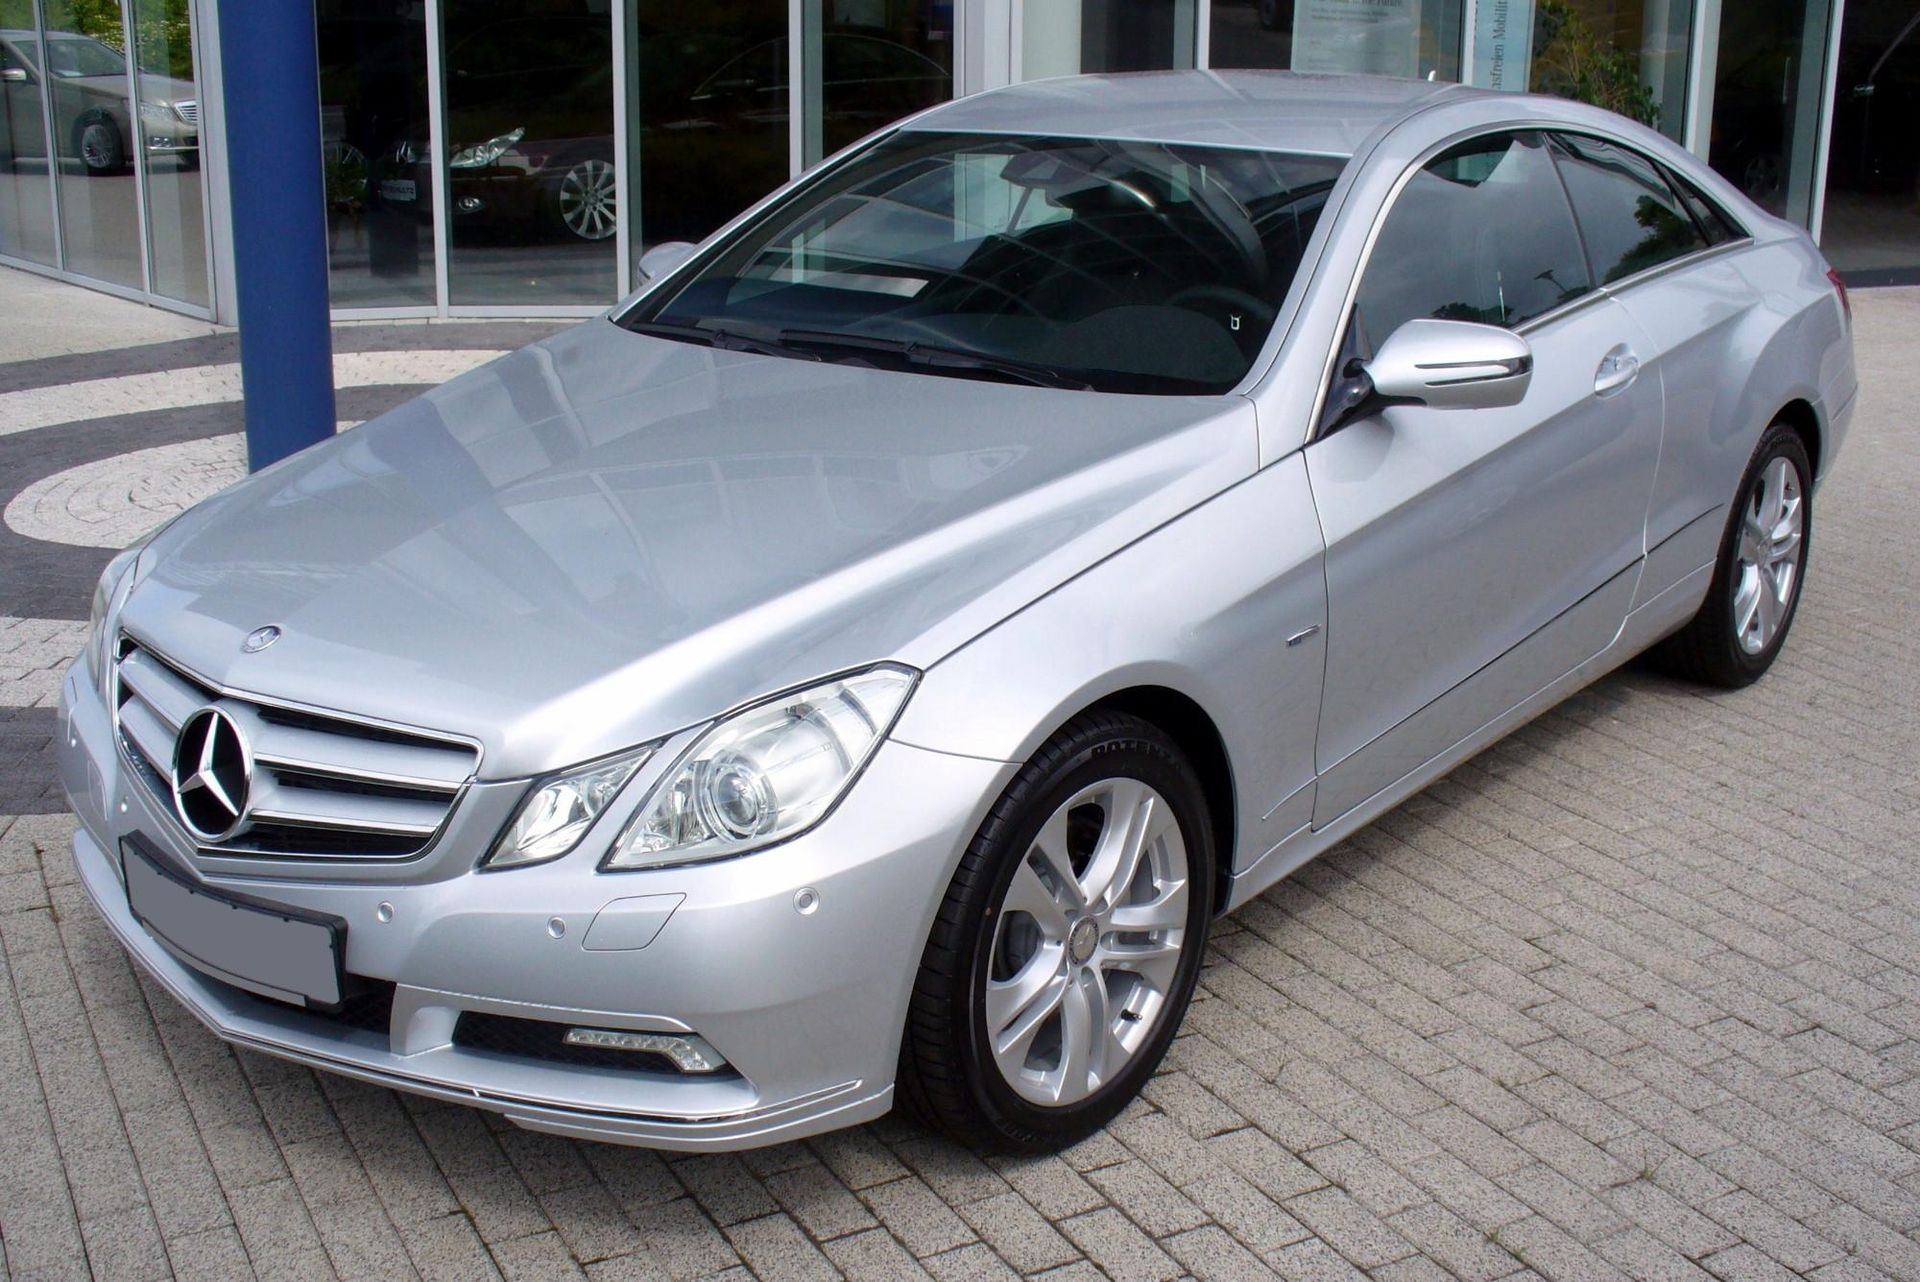 Mercedes benz e class c207 wikipedia for Mercedes benz maker